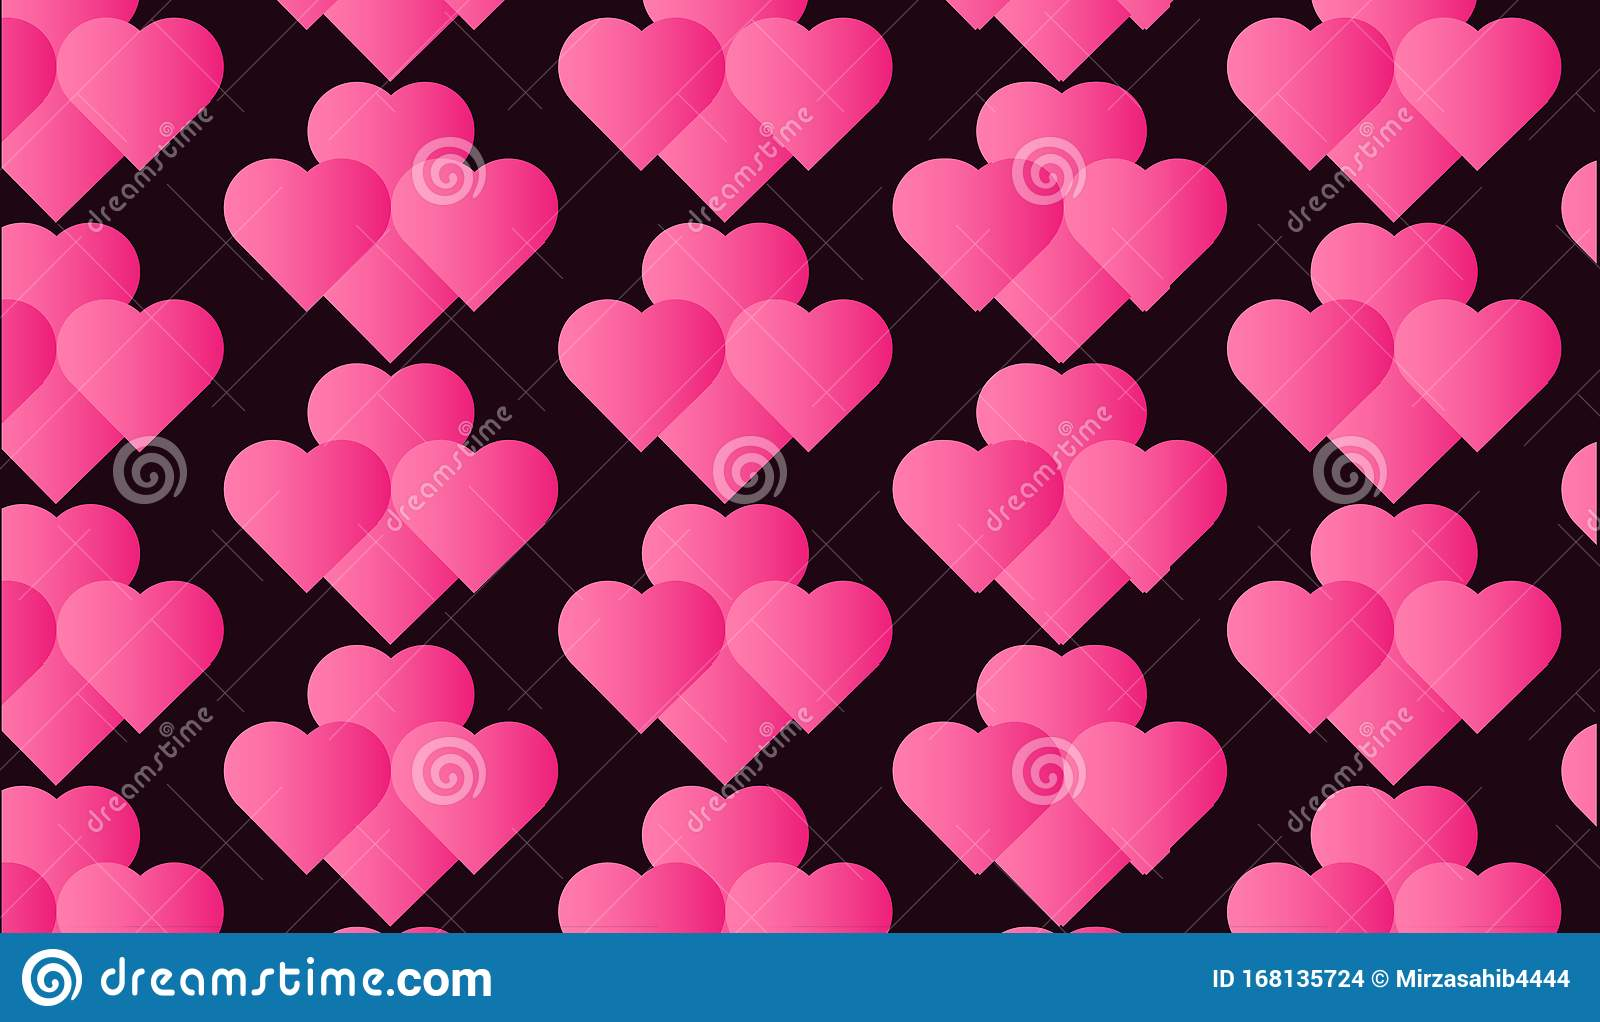 Black And Pink Wallpaper With Pink Hearts Pattern Stock Illustration Illustration Of Wallpaper Hearts 168135724